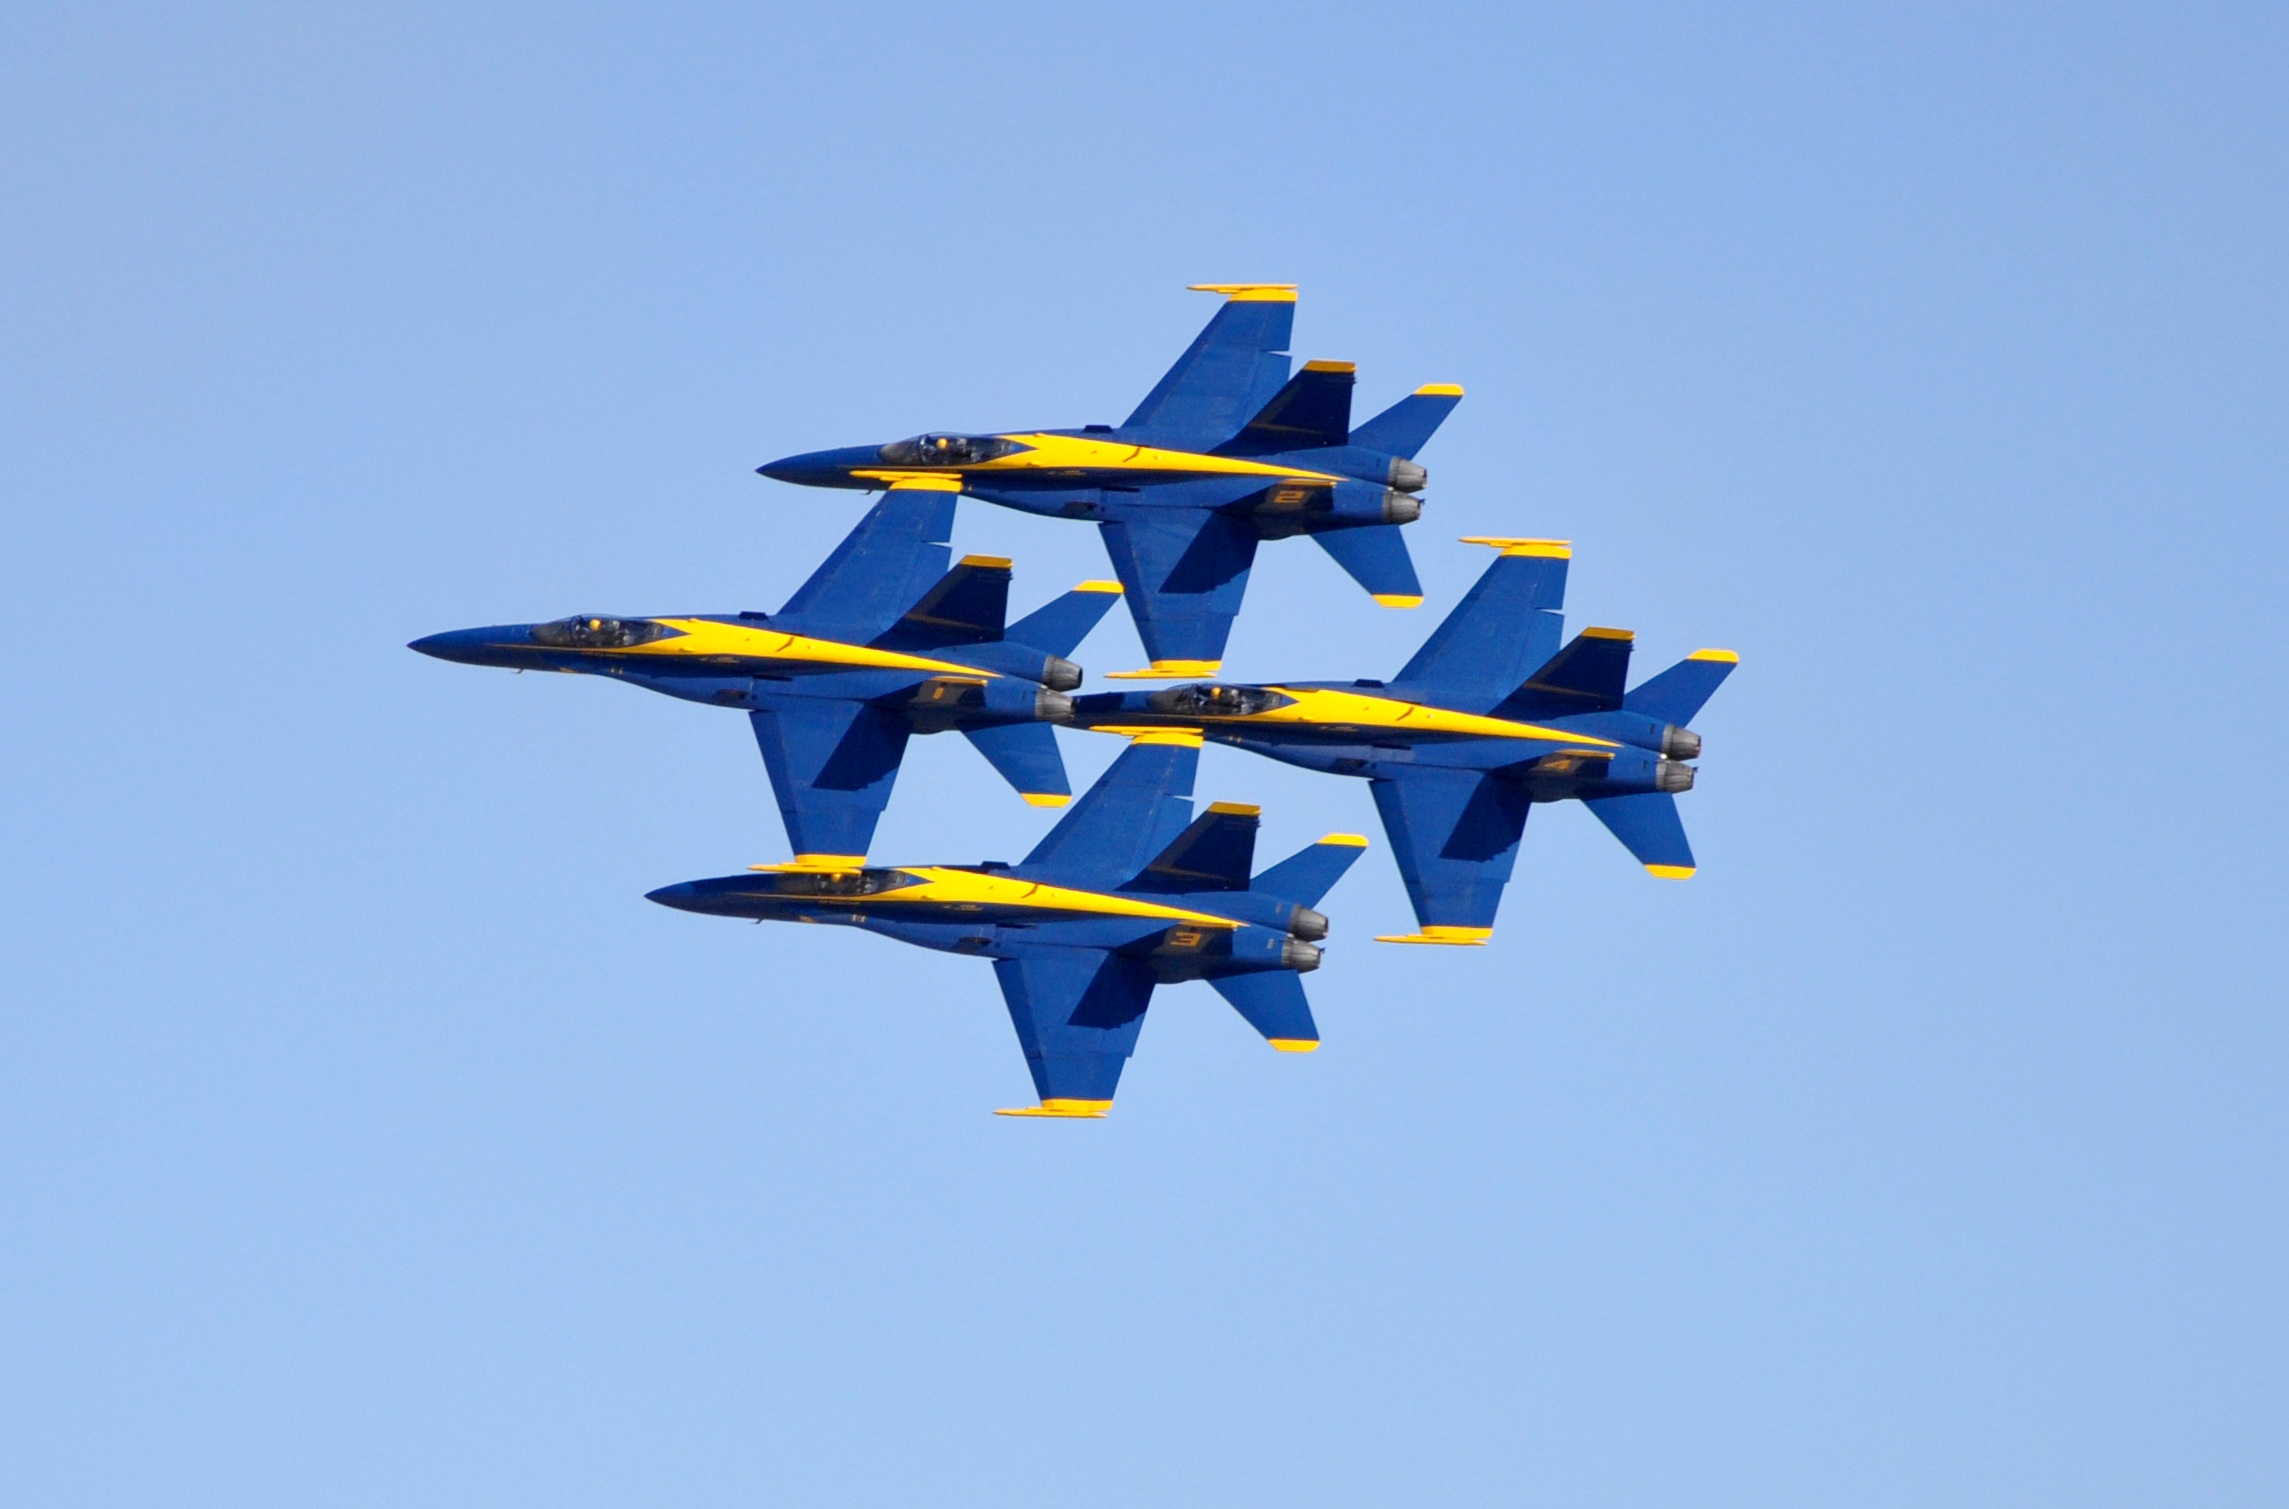 blue-angels-jets-f-18-flight-48021.jpeg